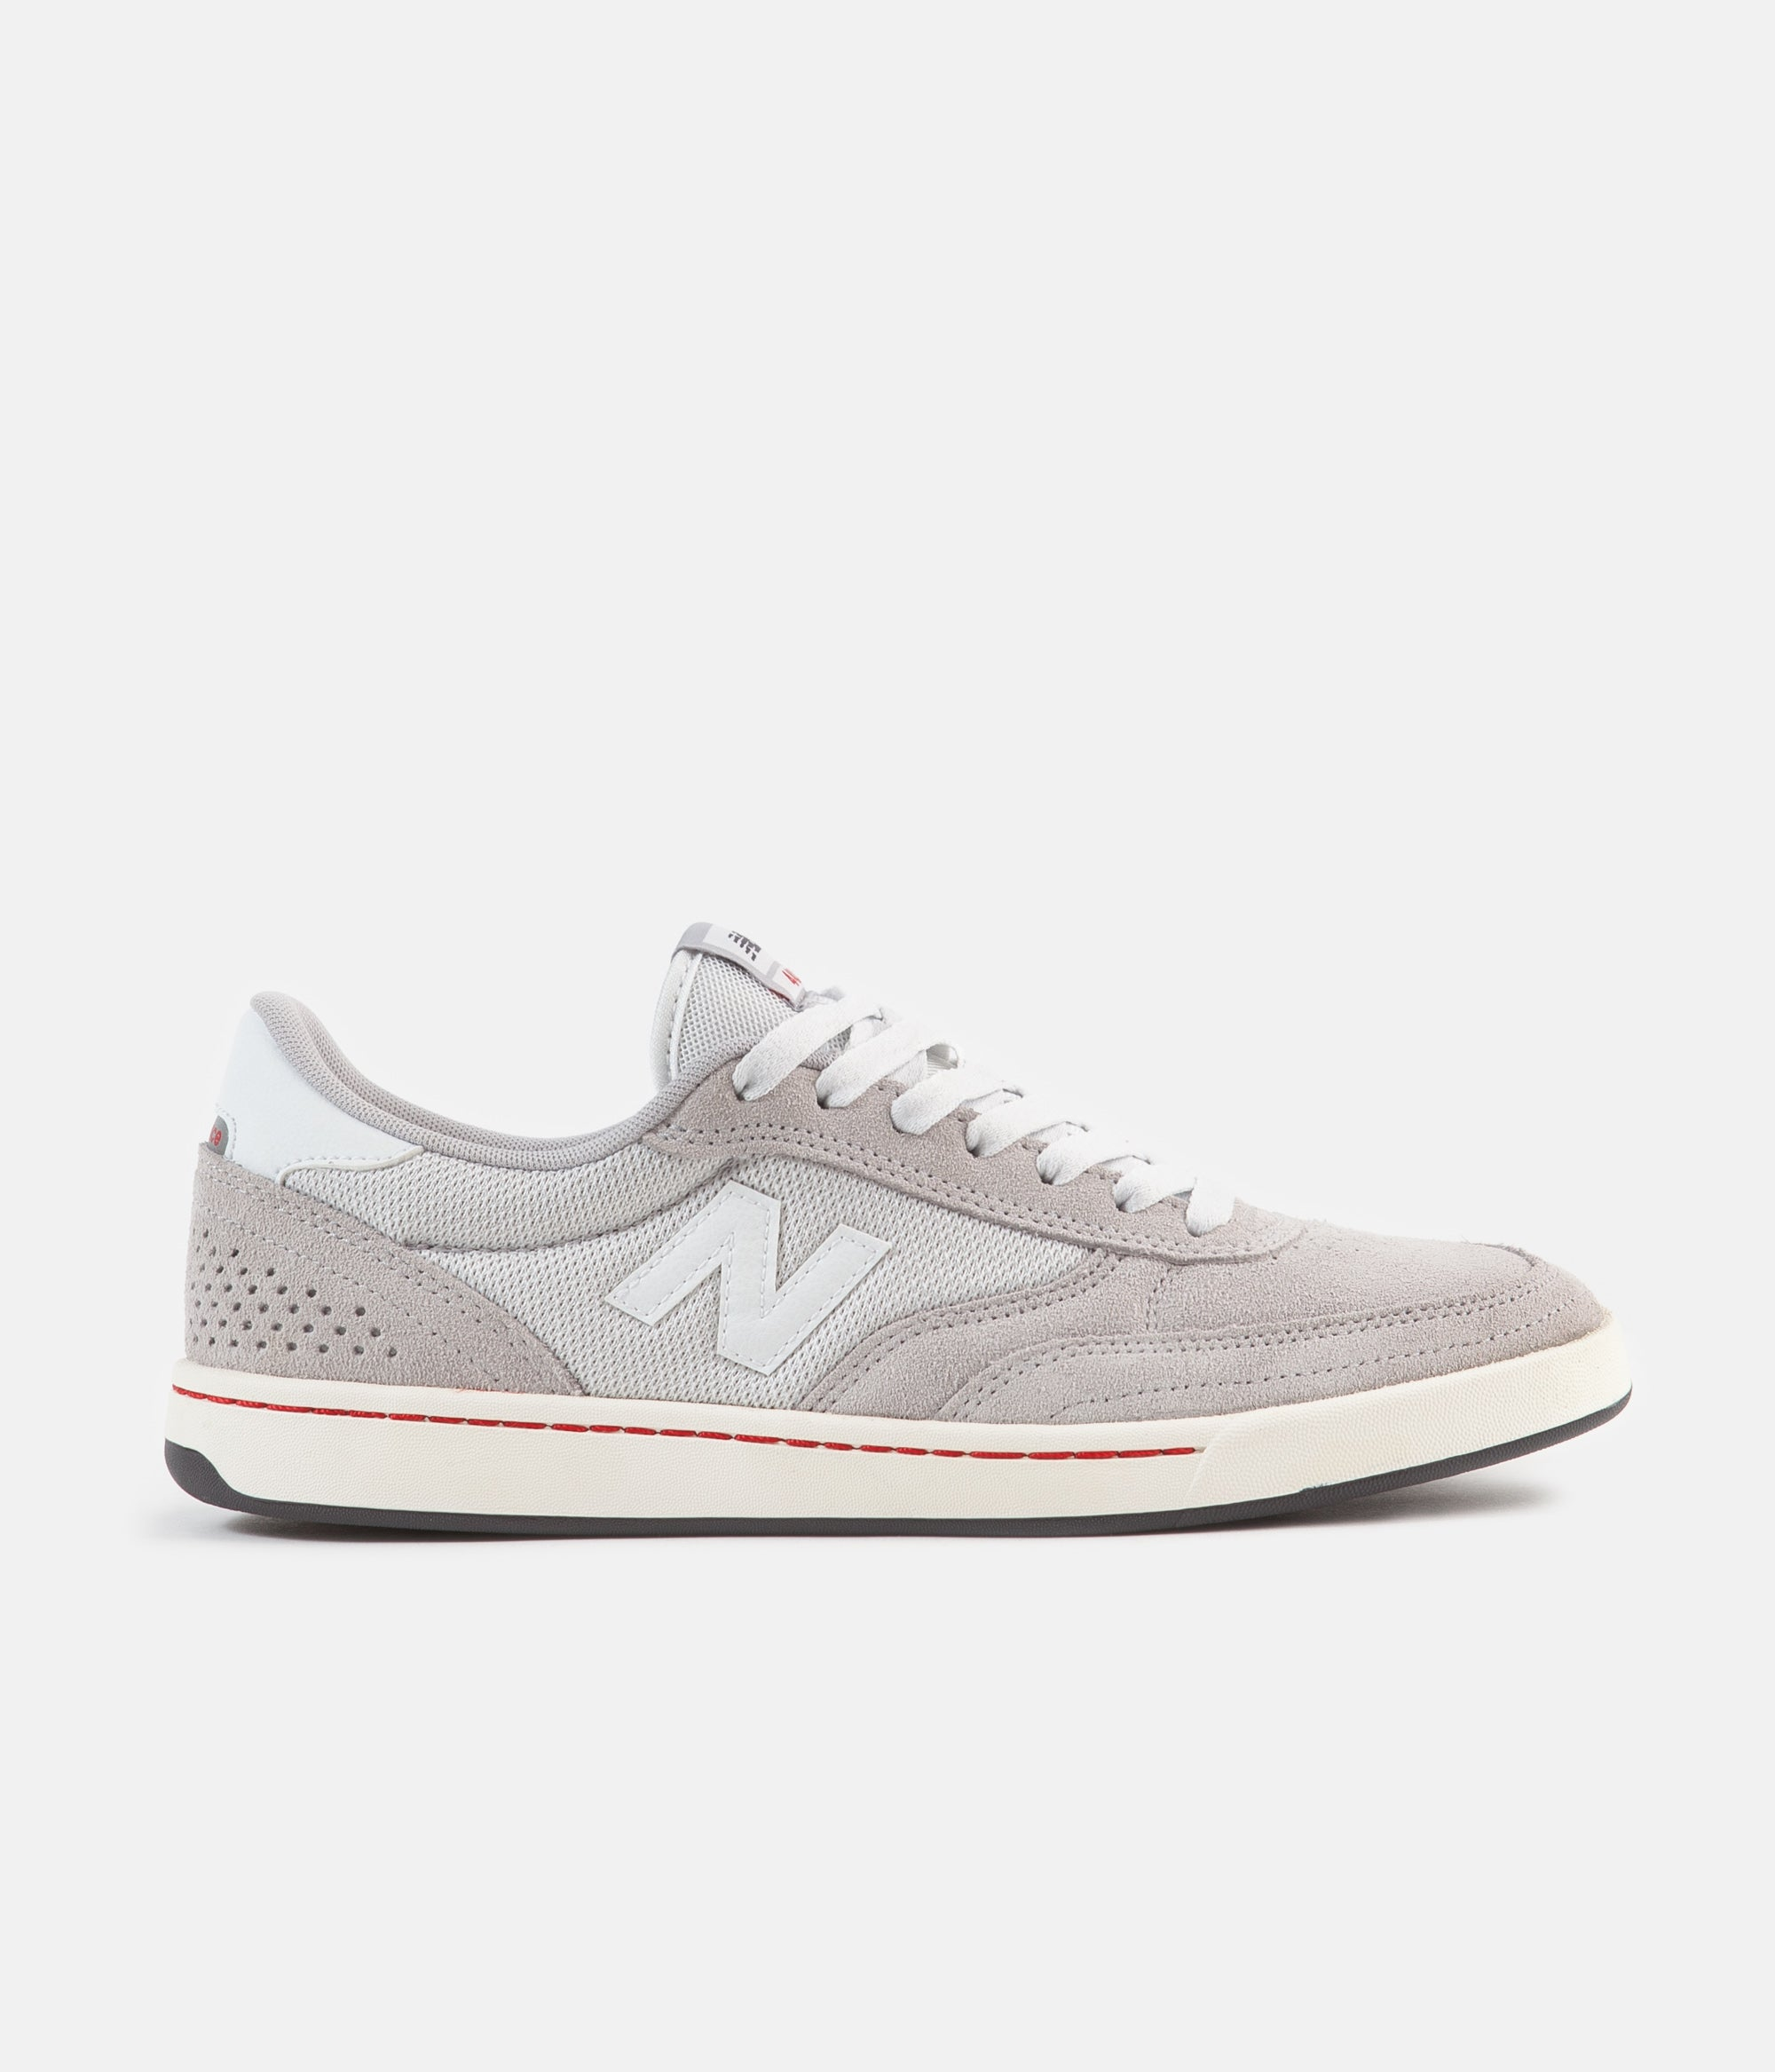 New Balance Numeric 440 Shoes - Grey / White